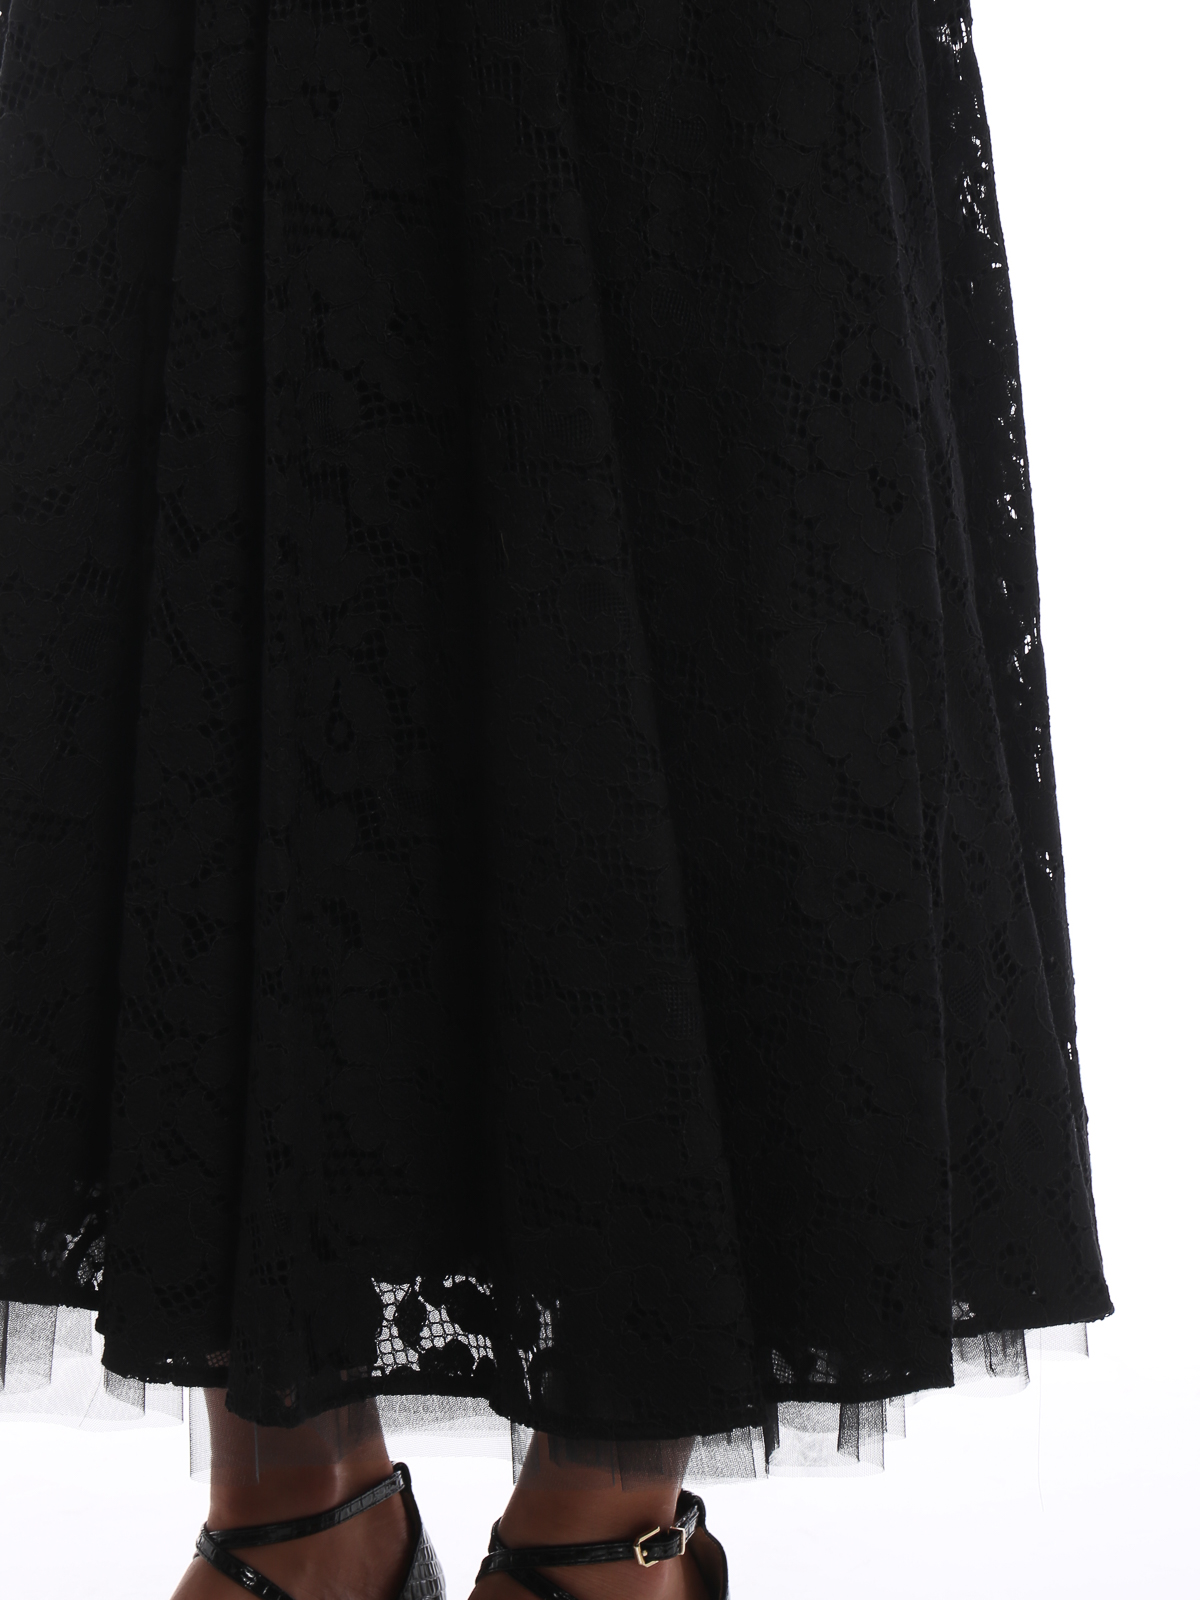 af10d264a5 Max Mara buy online Marilyn black lace and tulle midi skirt. Max Mara: Long  skirts ...